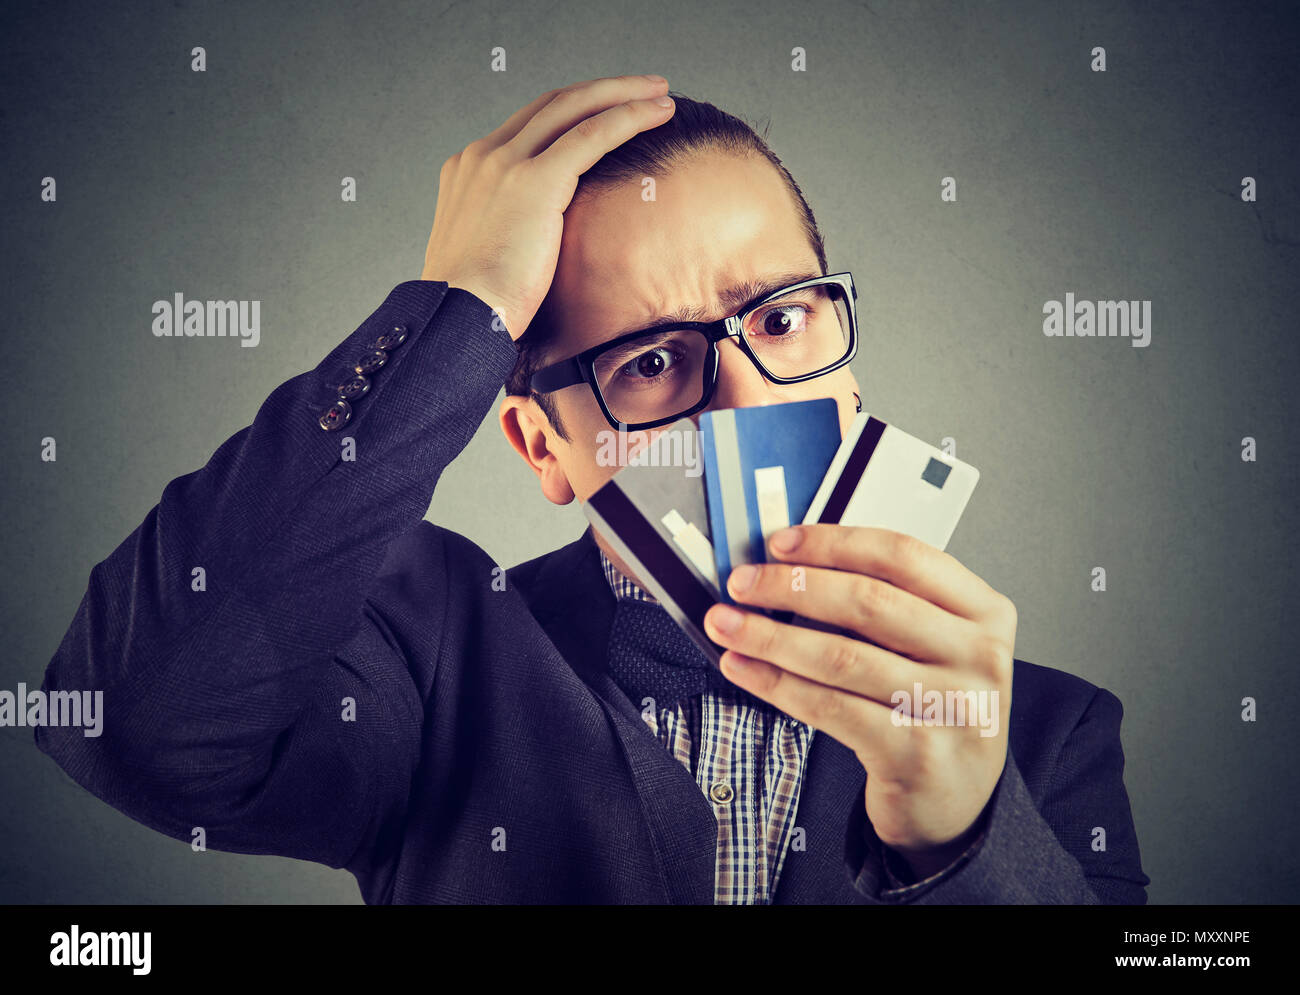 Young man in glasses holding credit cards and looking stressed with having money problems. - Stock Image